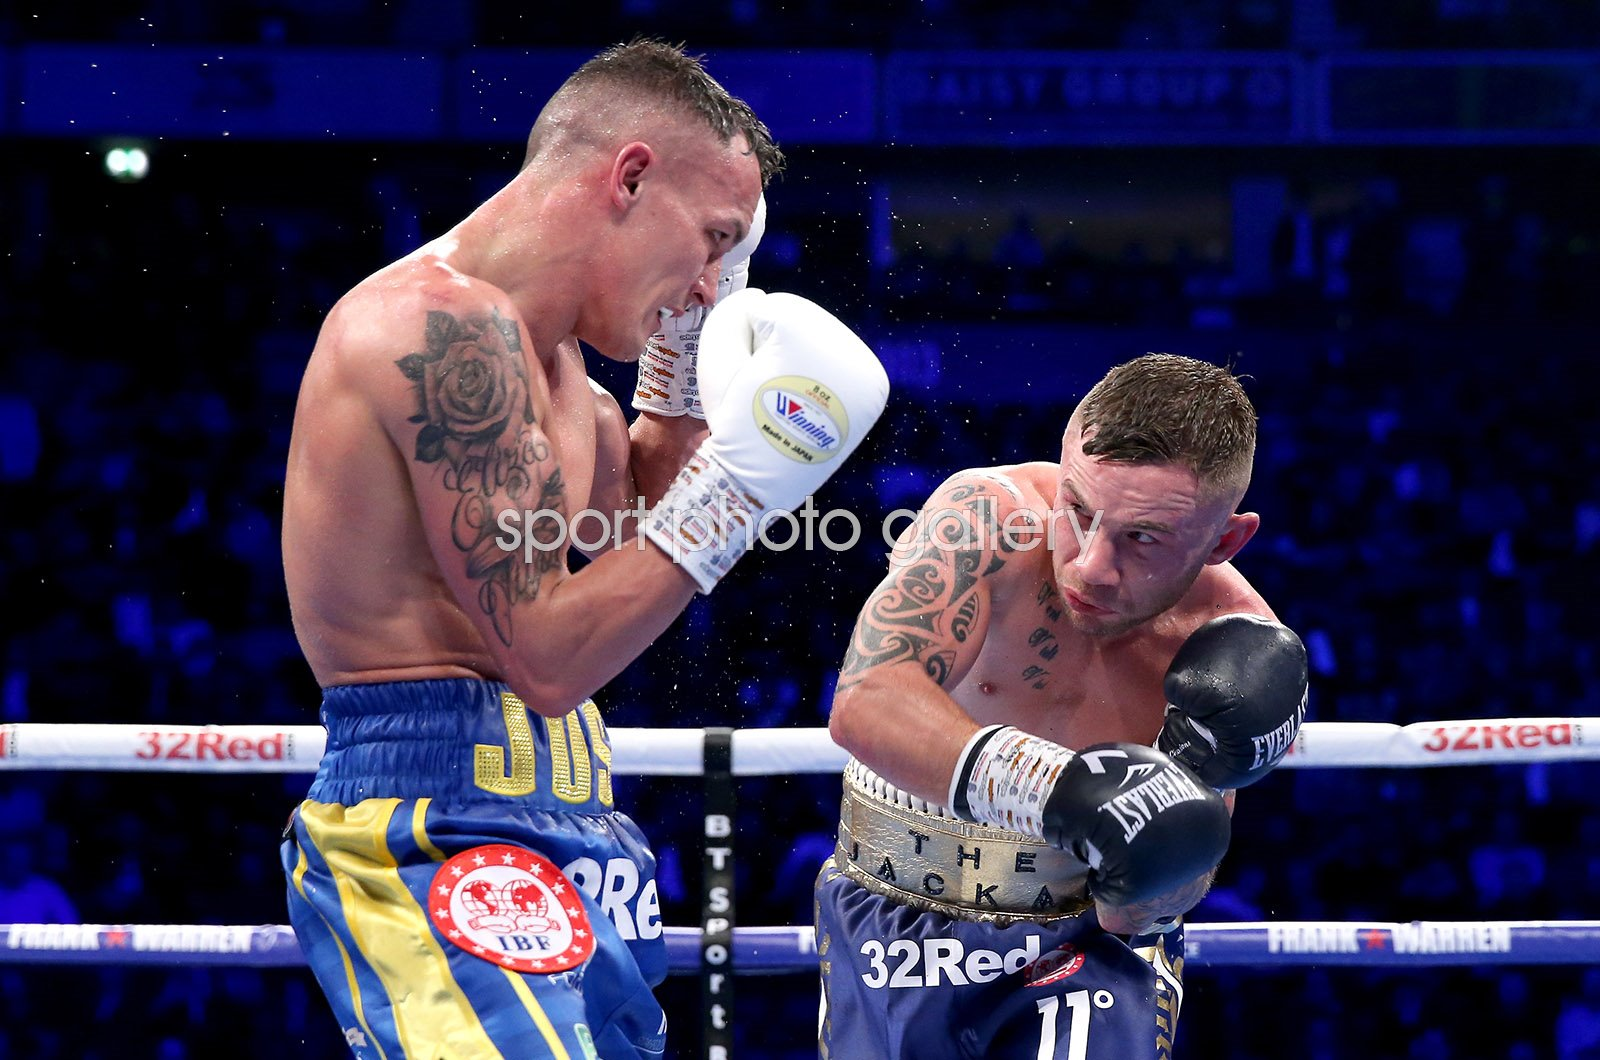 Josh Warrington v Carl Frampton IBF World Title Fight Manchester Arena 2018